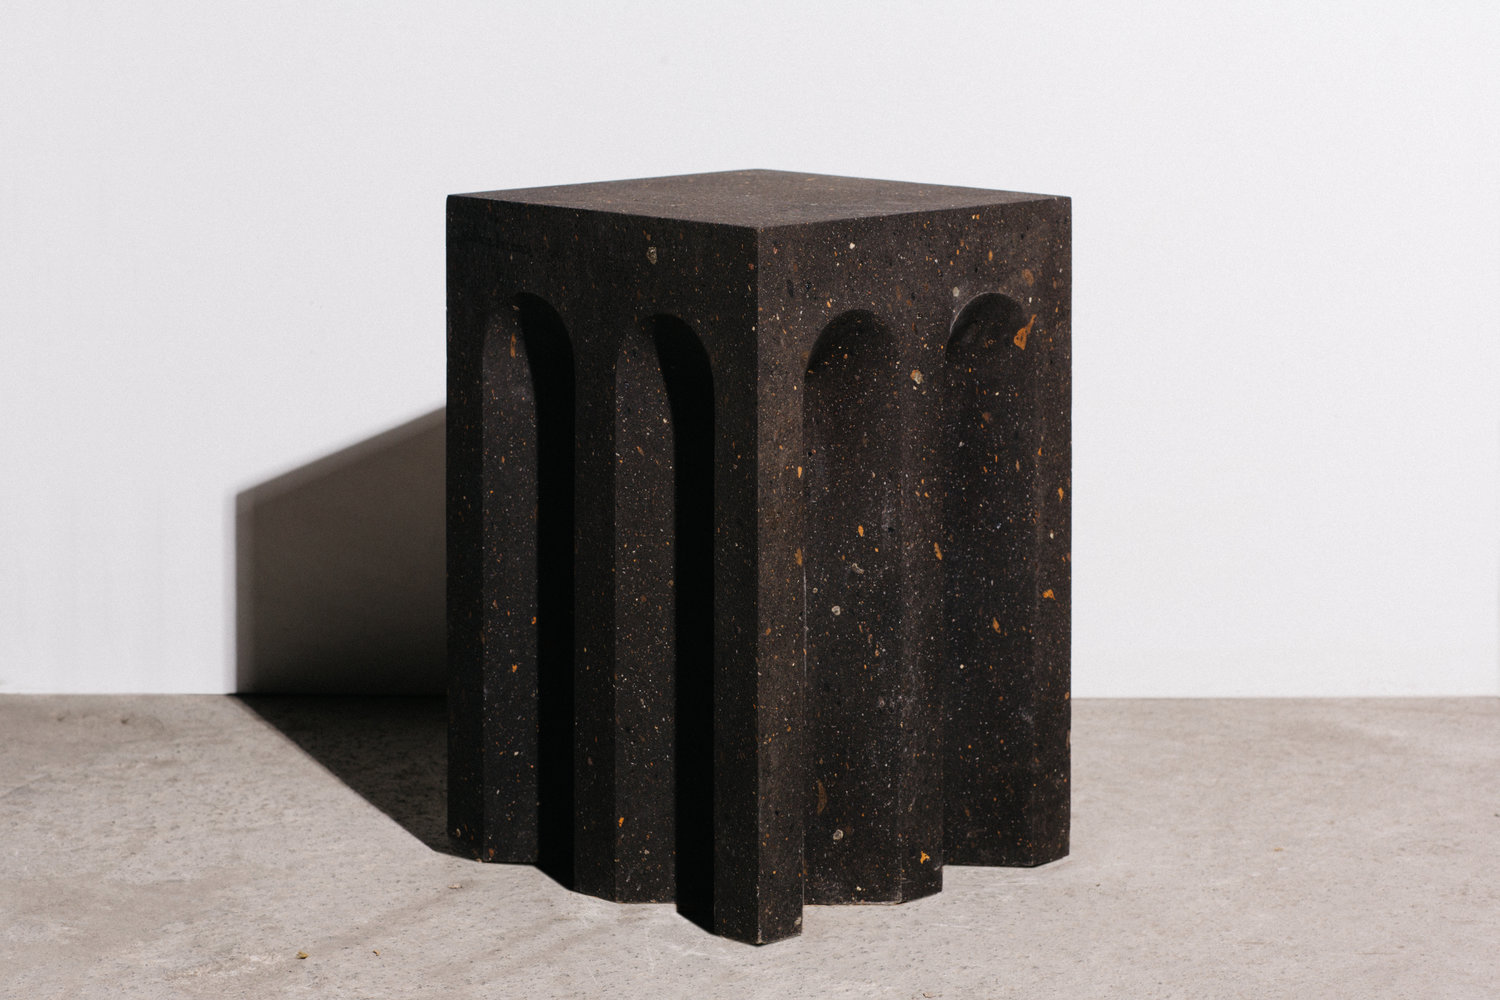 Sculptural Objects from ASPACE Studio 1